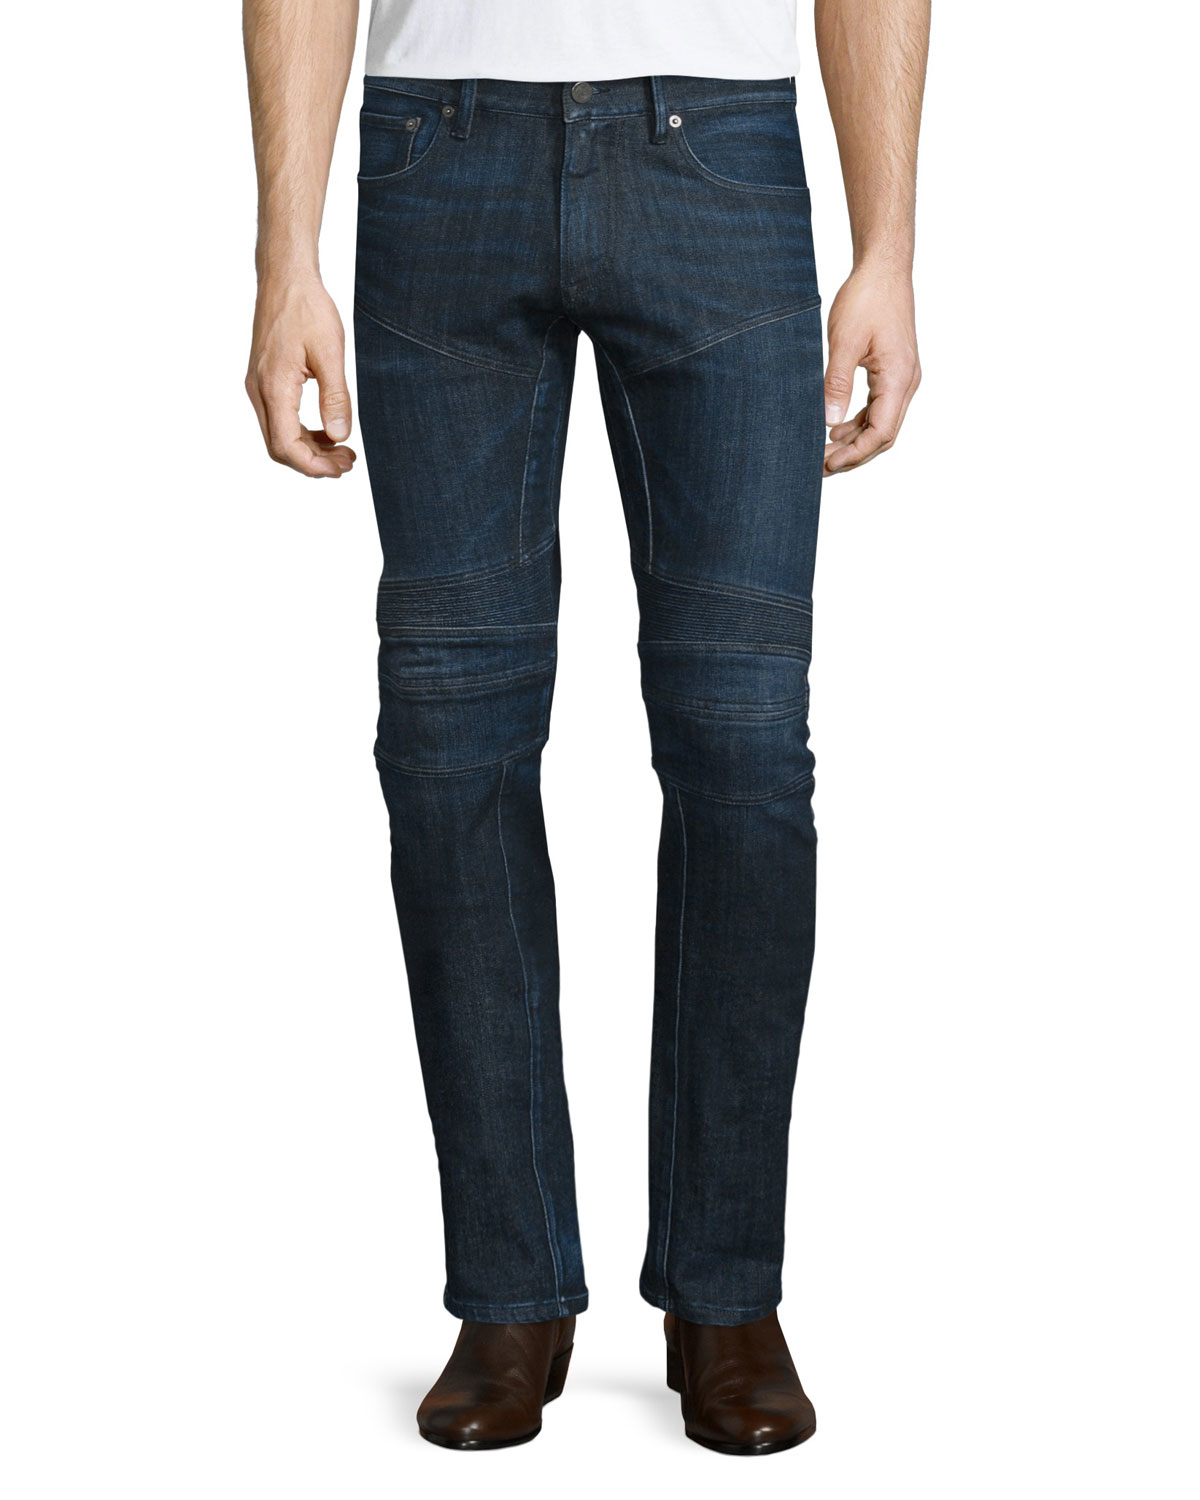 Hudson Jeans makes the best designer jeans for men in seasonal colors and fits, as well as on trend bomber jackets, jean jackets, selvedge denim, cargo pants, jean shorts and much more. Find your favorite denim fit when it comes to skinny jeans, straight leg jeans, slim straight jeans, and bootcut jeans.